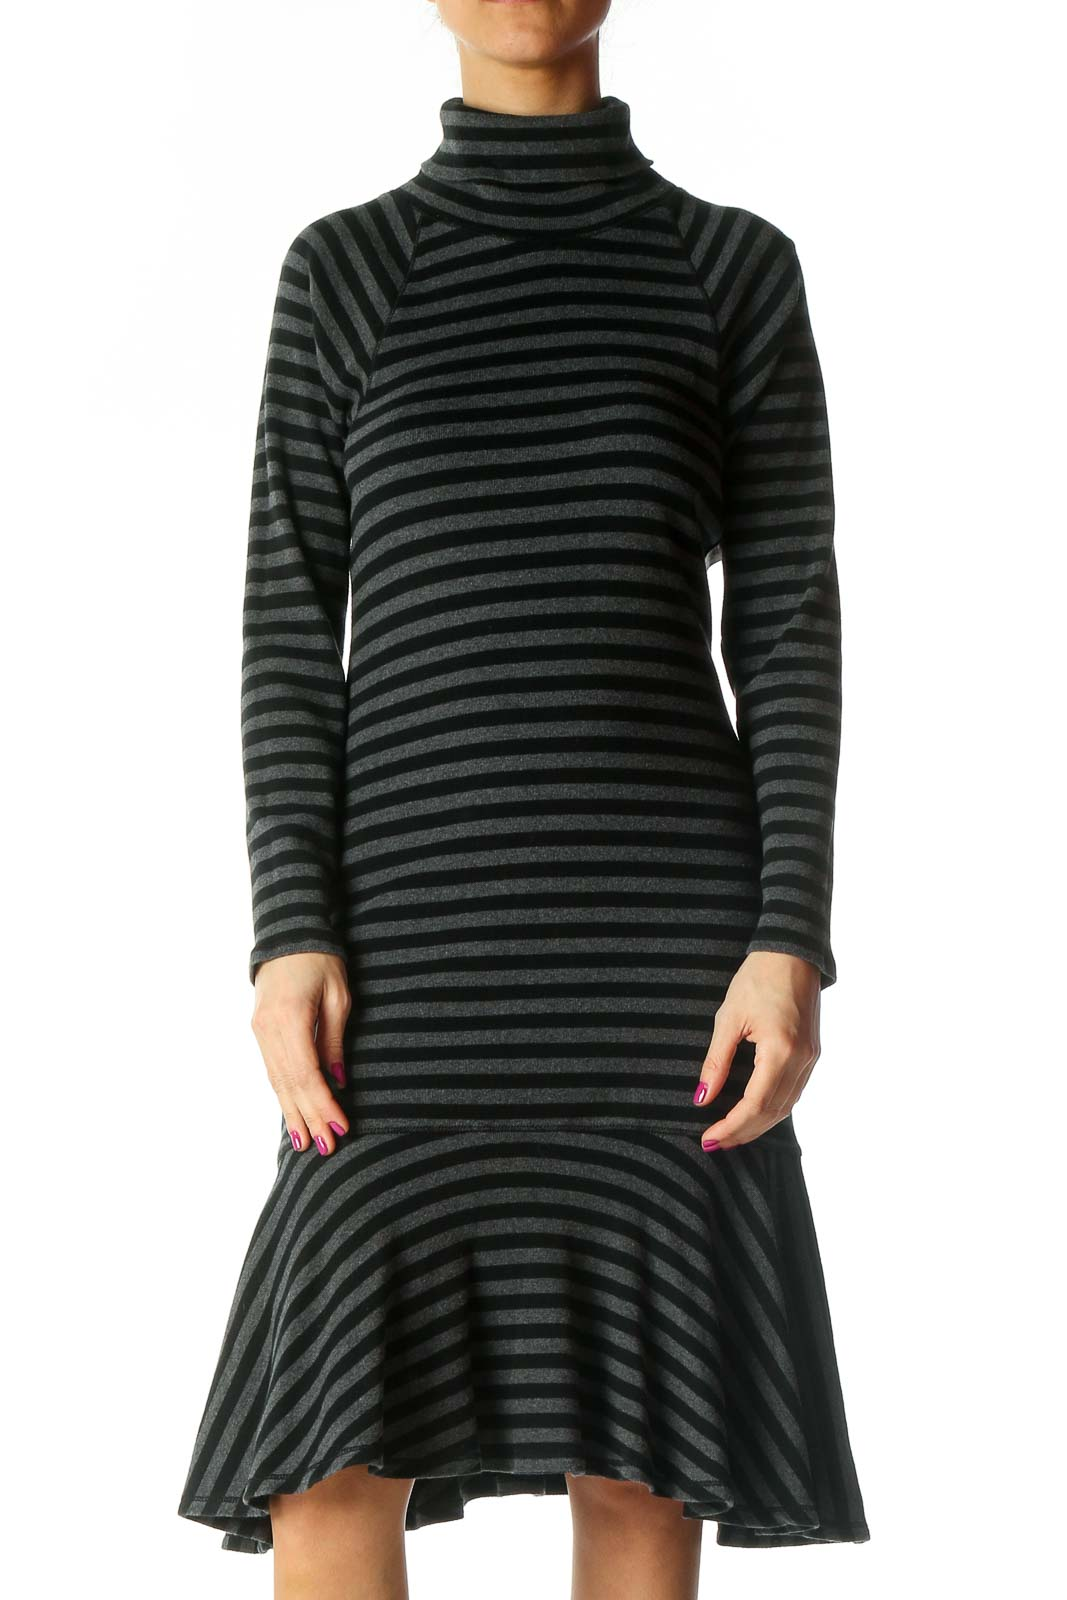 Gray Striped Casual A-Line Dress Front